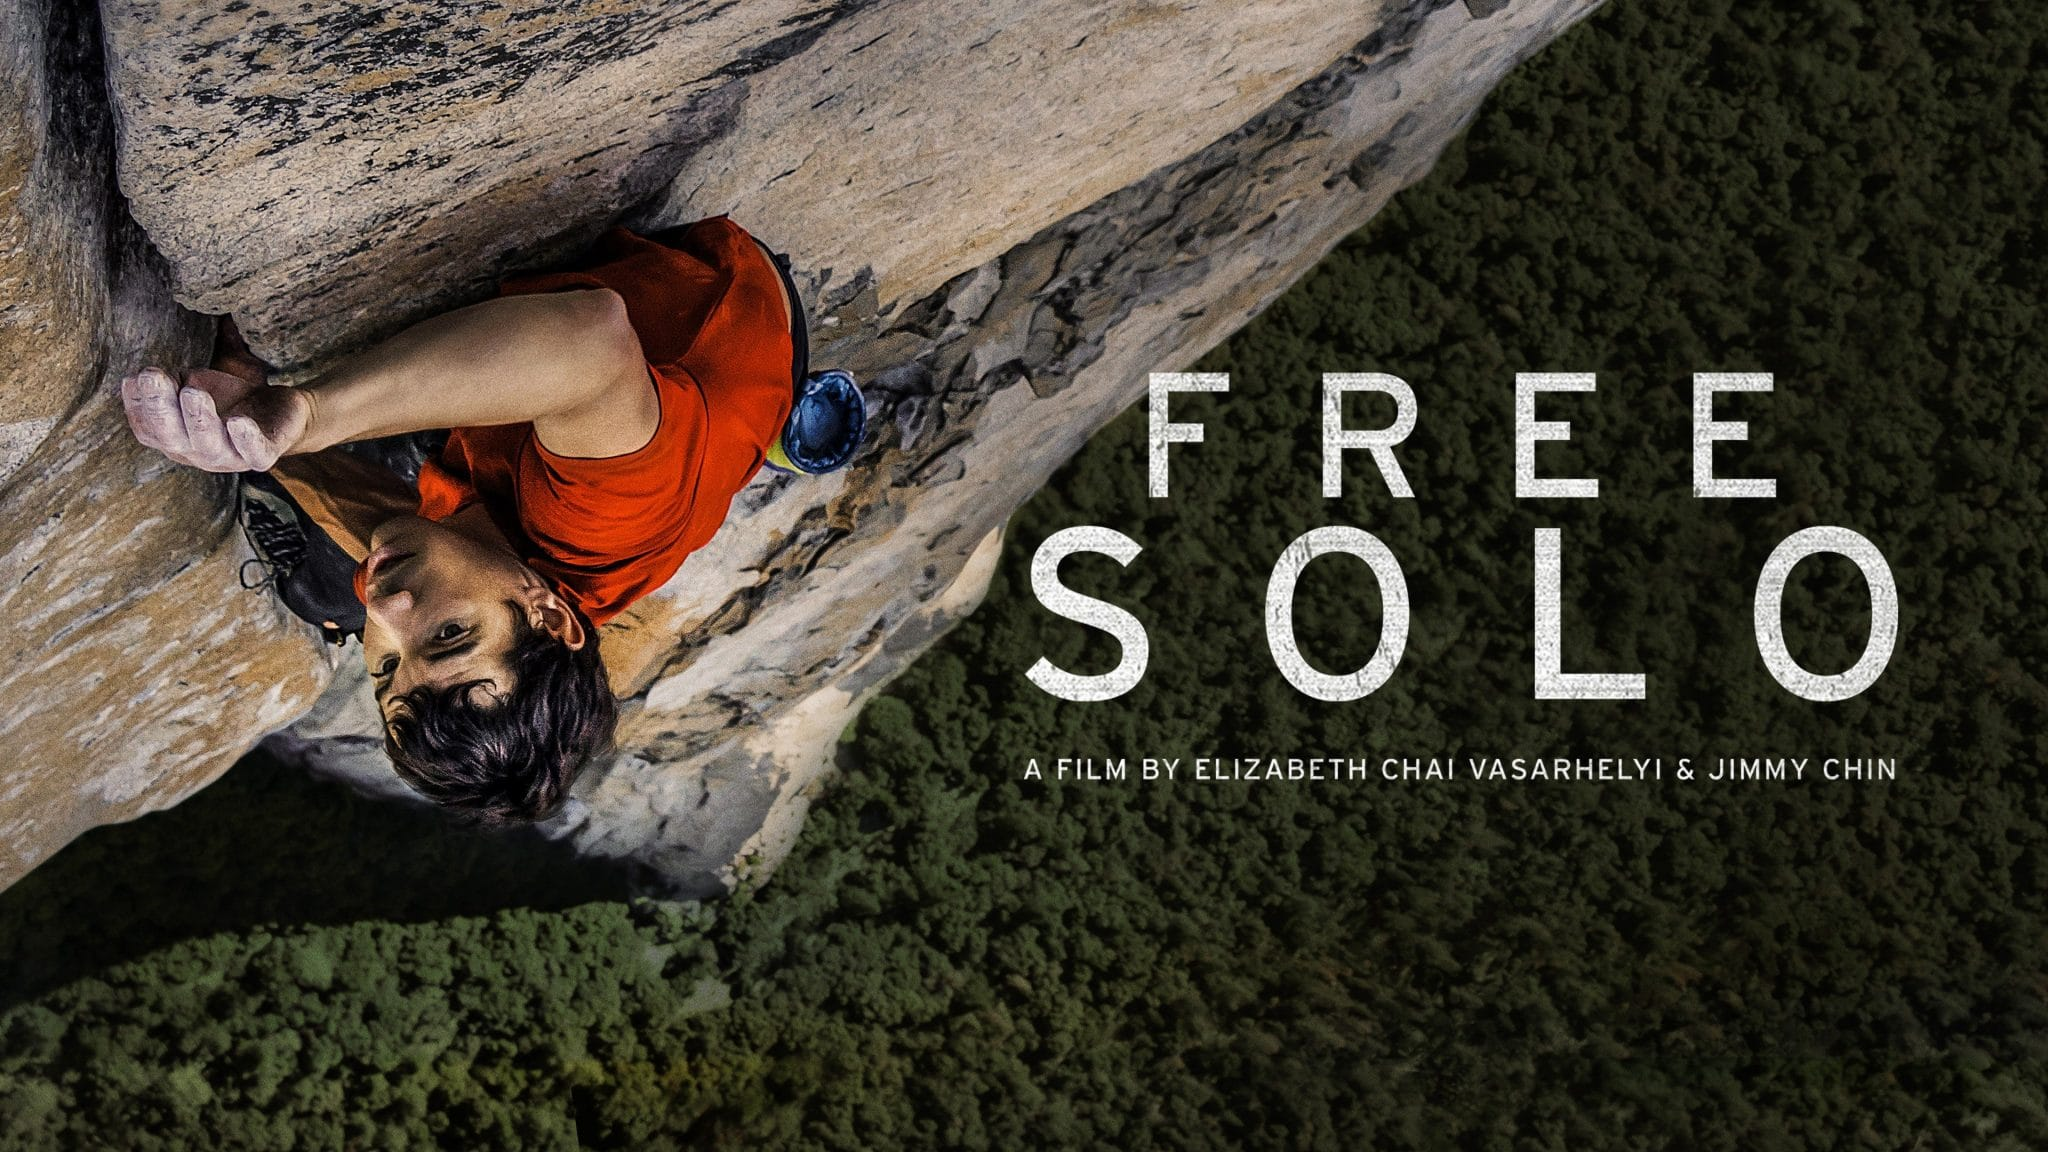 the poster for the documentary Free Solo